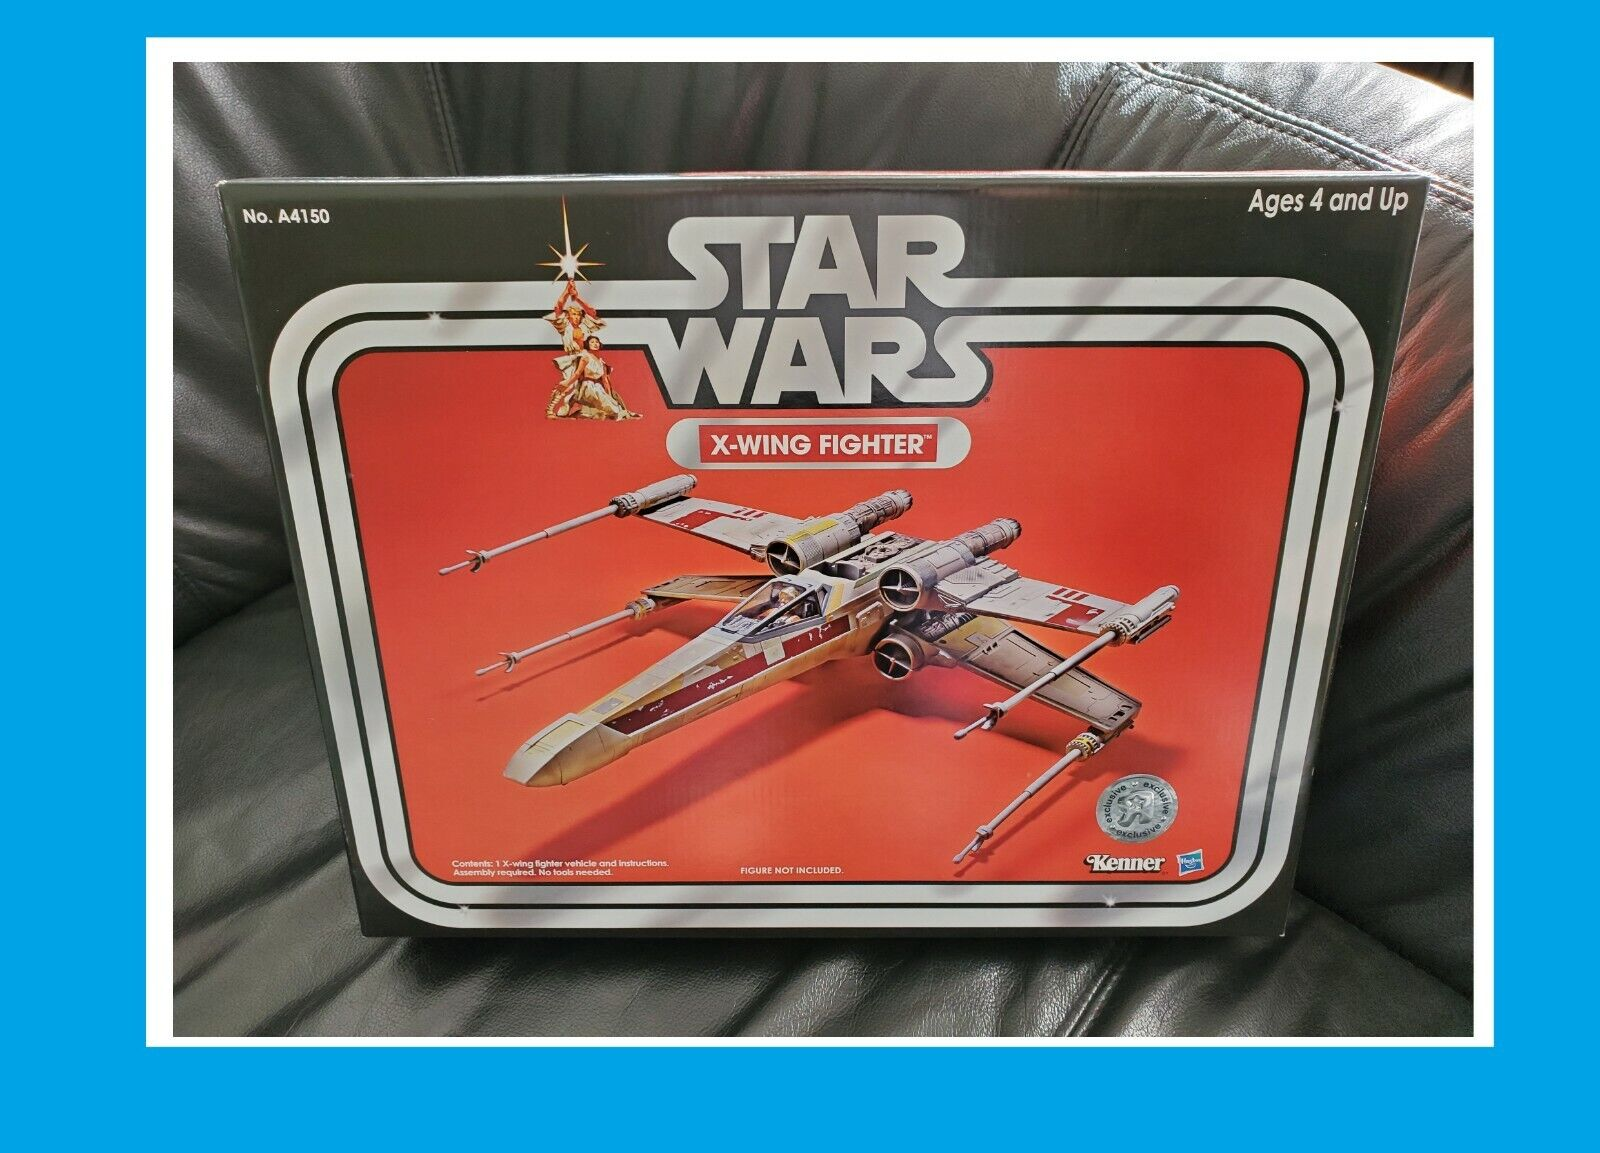 HASBRO estrella guerras THE VINTAGE  COLLECTION giocattoli R US EXCLUSIVE X-WING FIGHTER  ecco l'ultimo